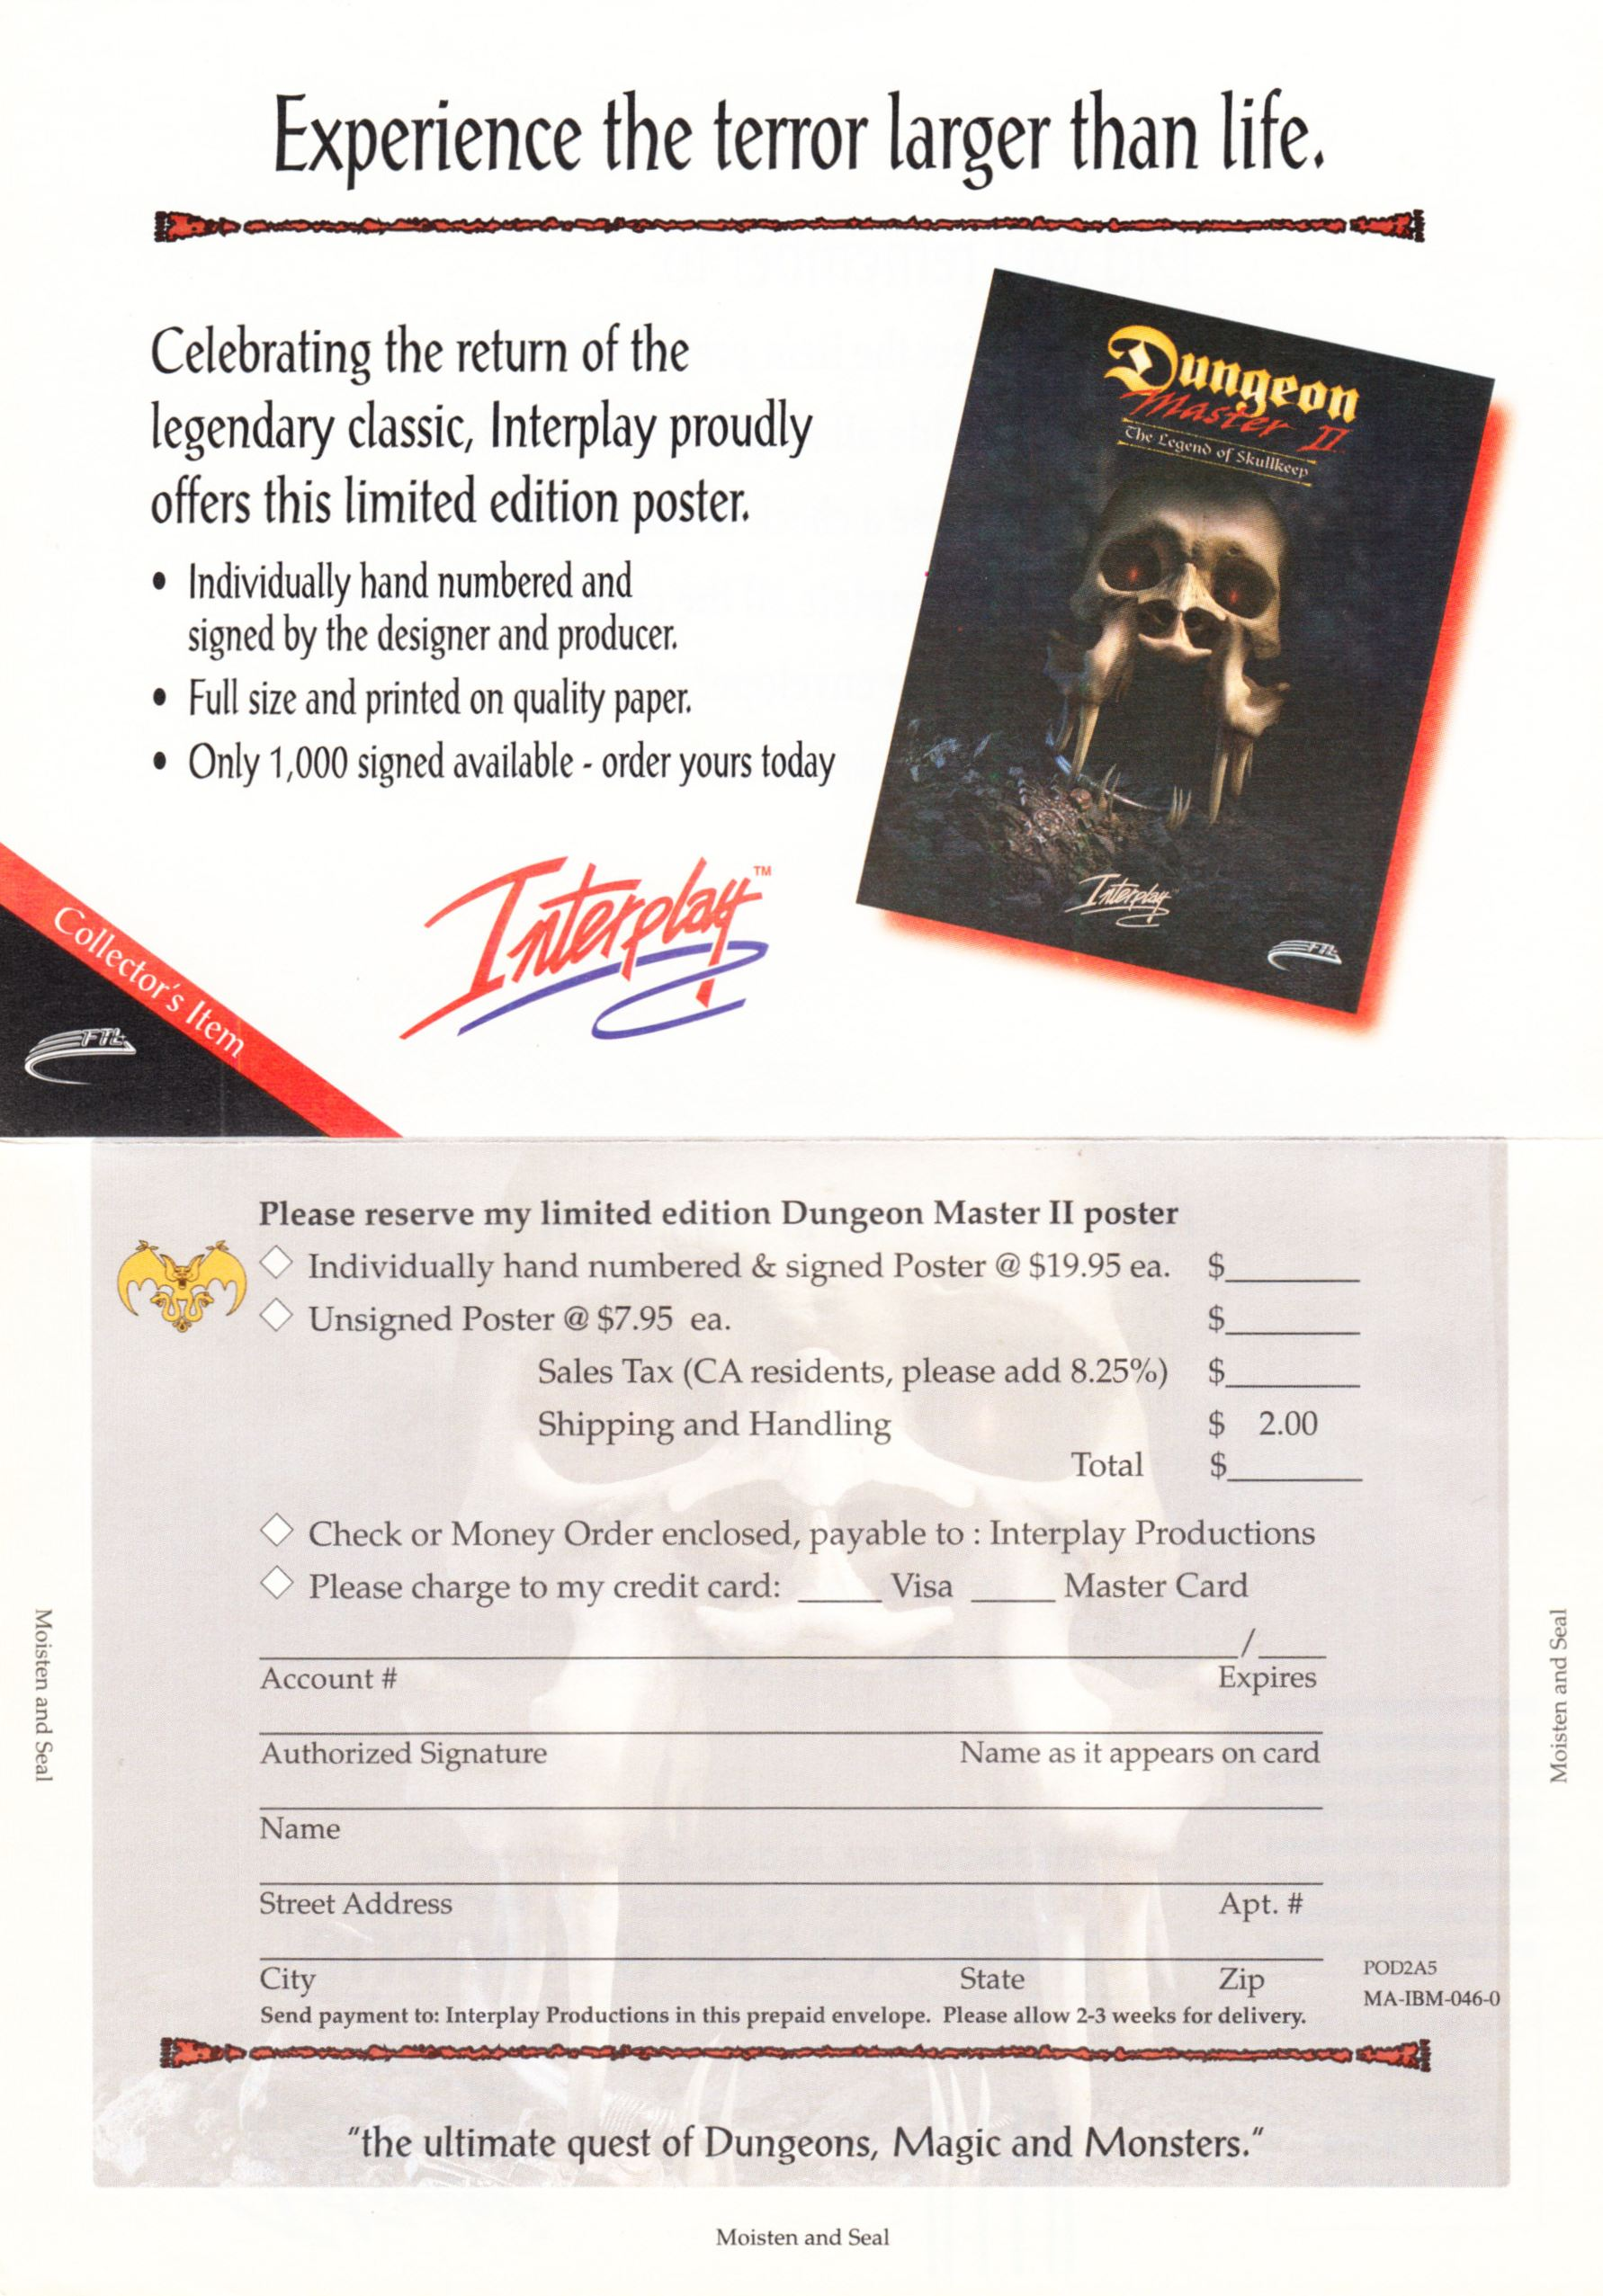 Game - Dungeon Master II - US - PC - Big Box - Poster Order Form - Back - Scan